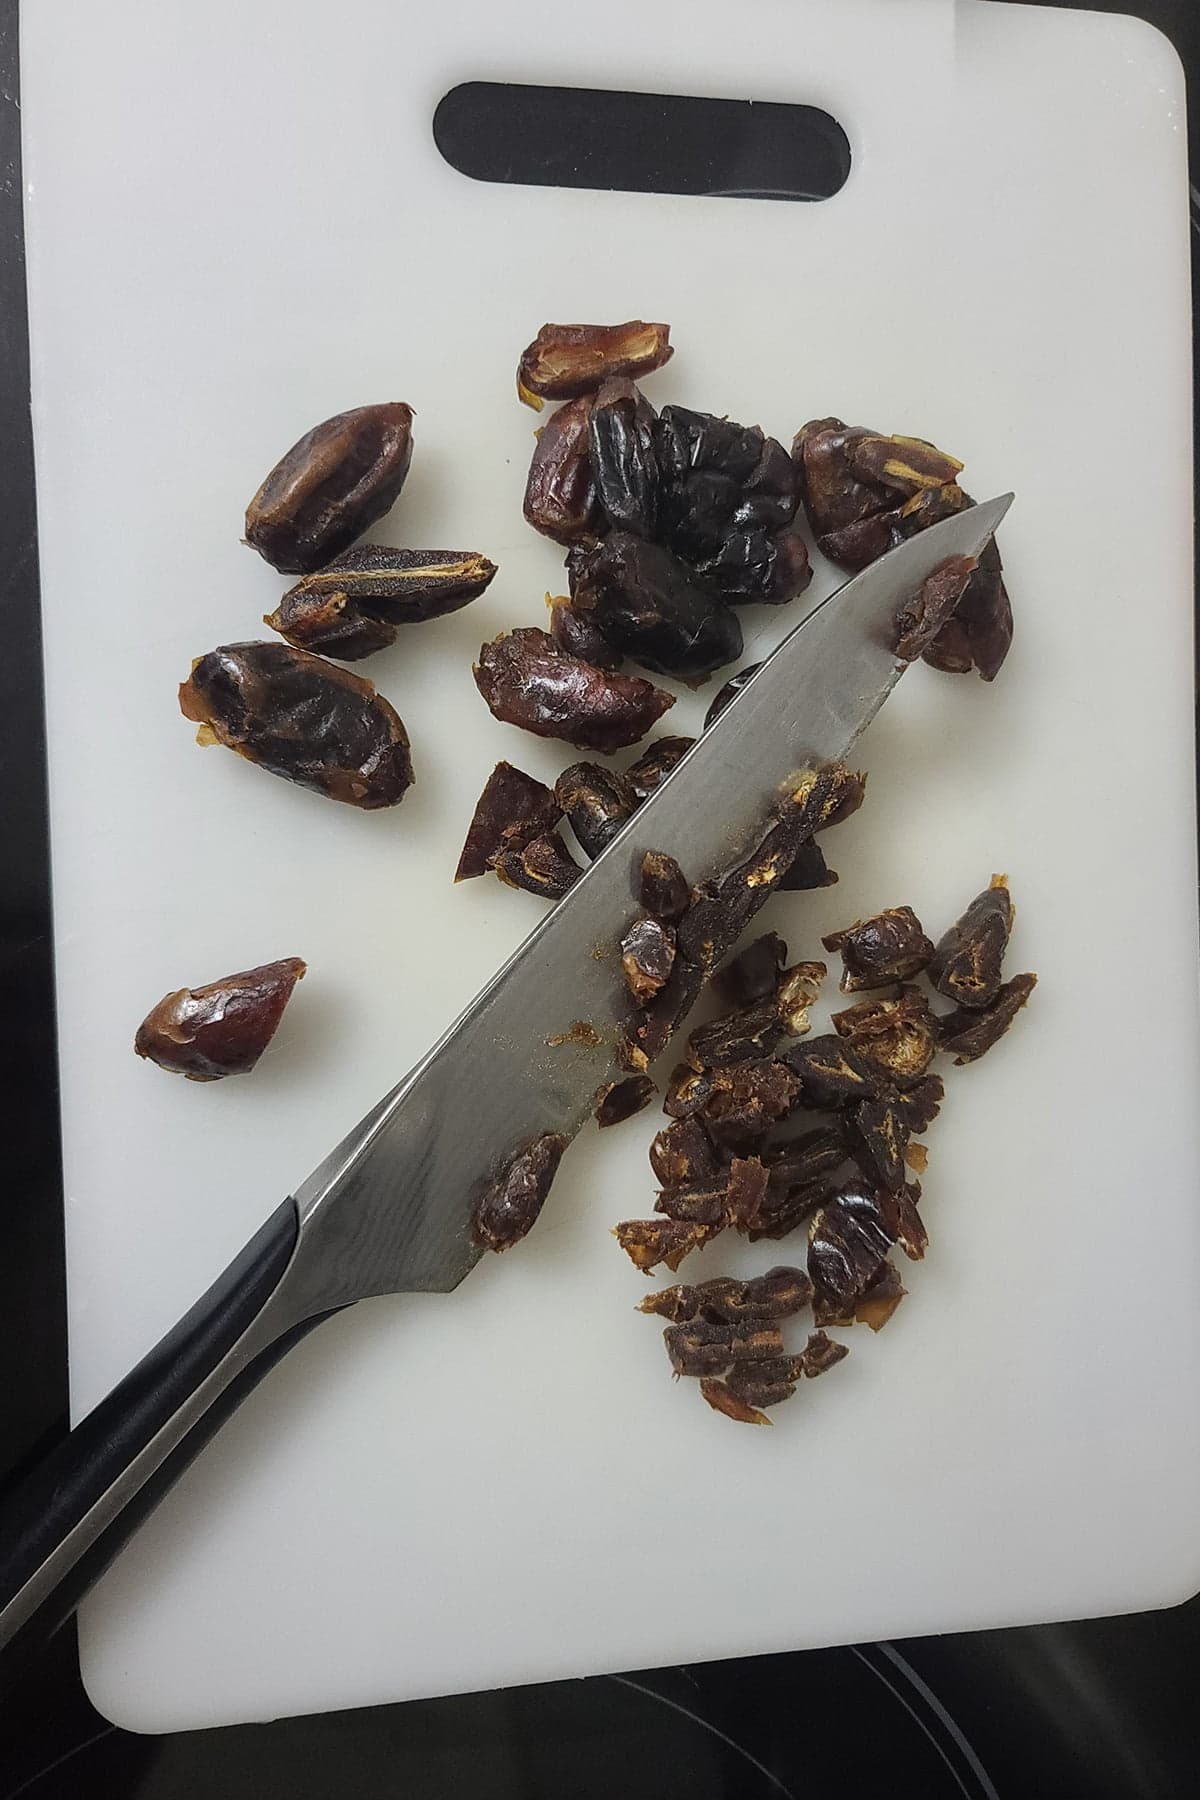 Dried dates on a cutting board, with a knife.